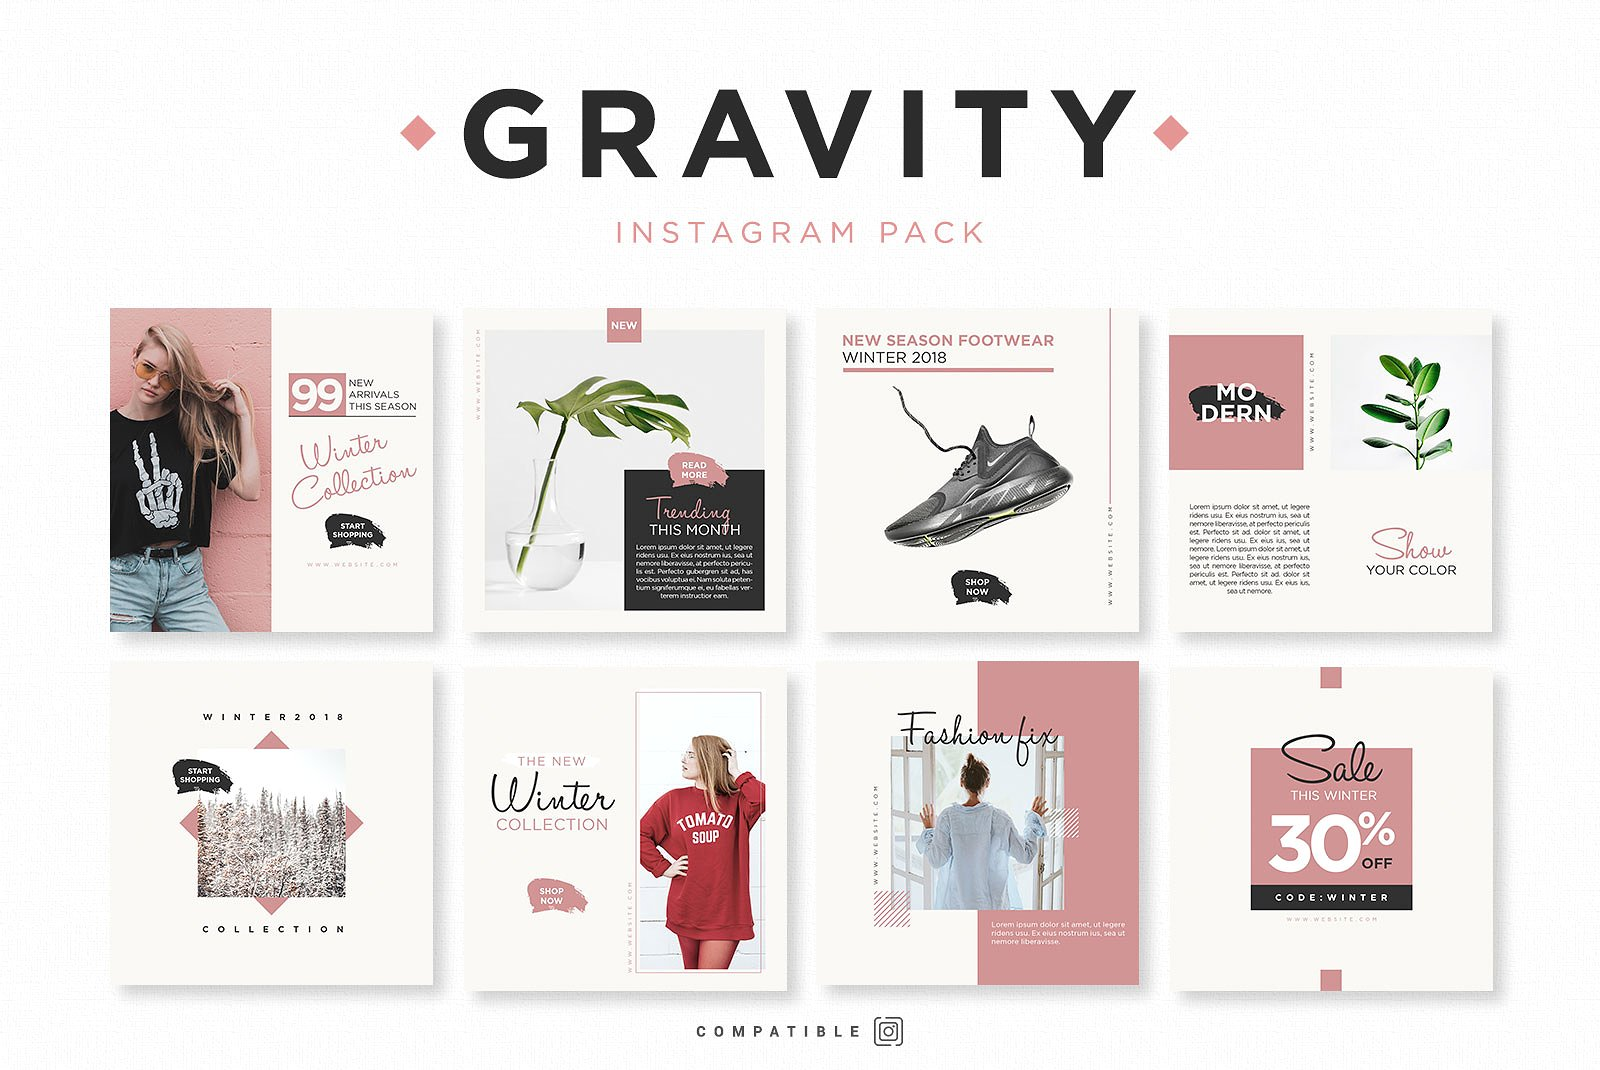 Gravity Instagram Pack Graphic Web Elements By wally6484 - Image 1